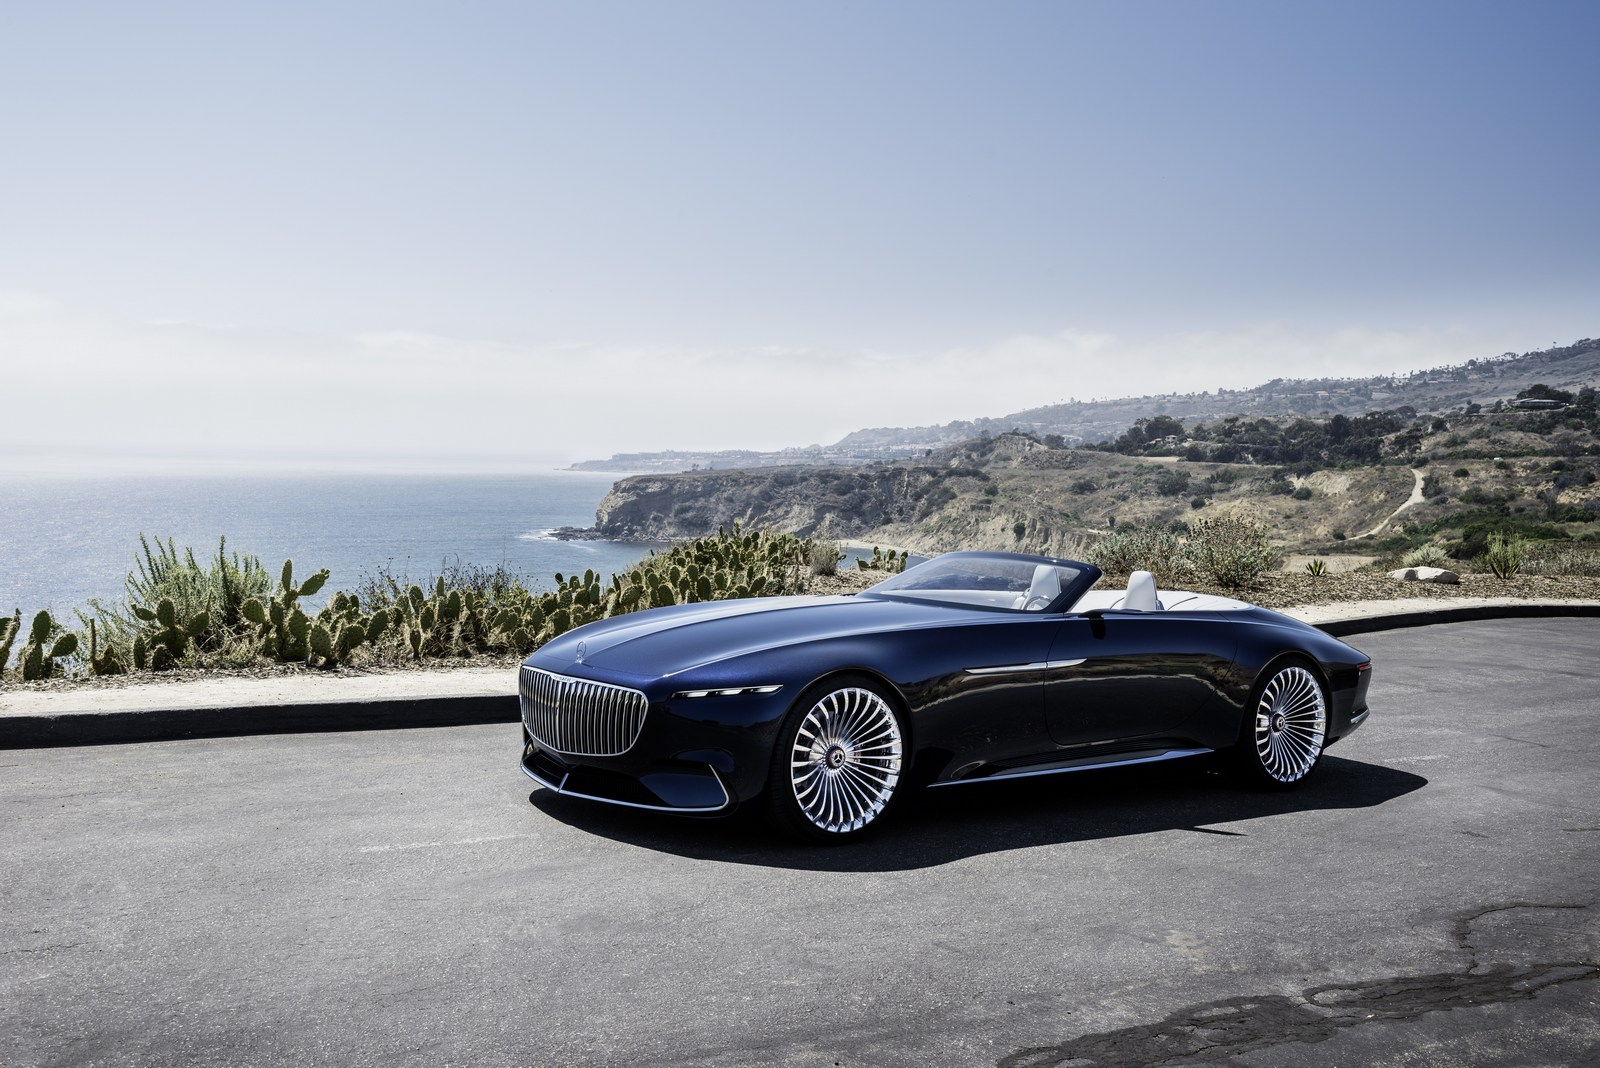 mercedes maybach 6 cabriolet concept unveiled with an electric powertrain carscoops. Black Bedroom Furniture Sets. Home Design Ideas